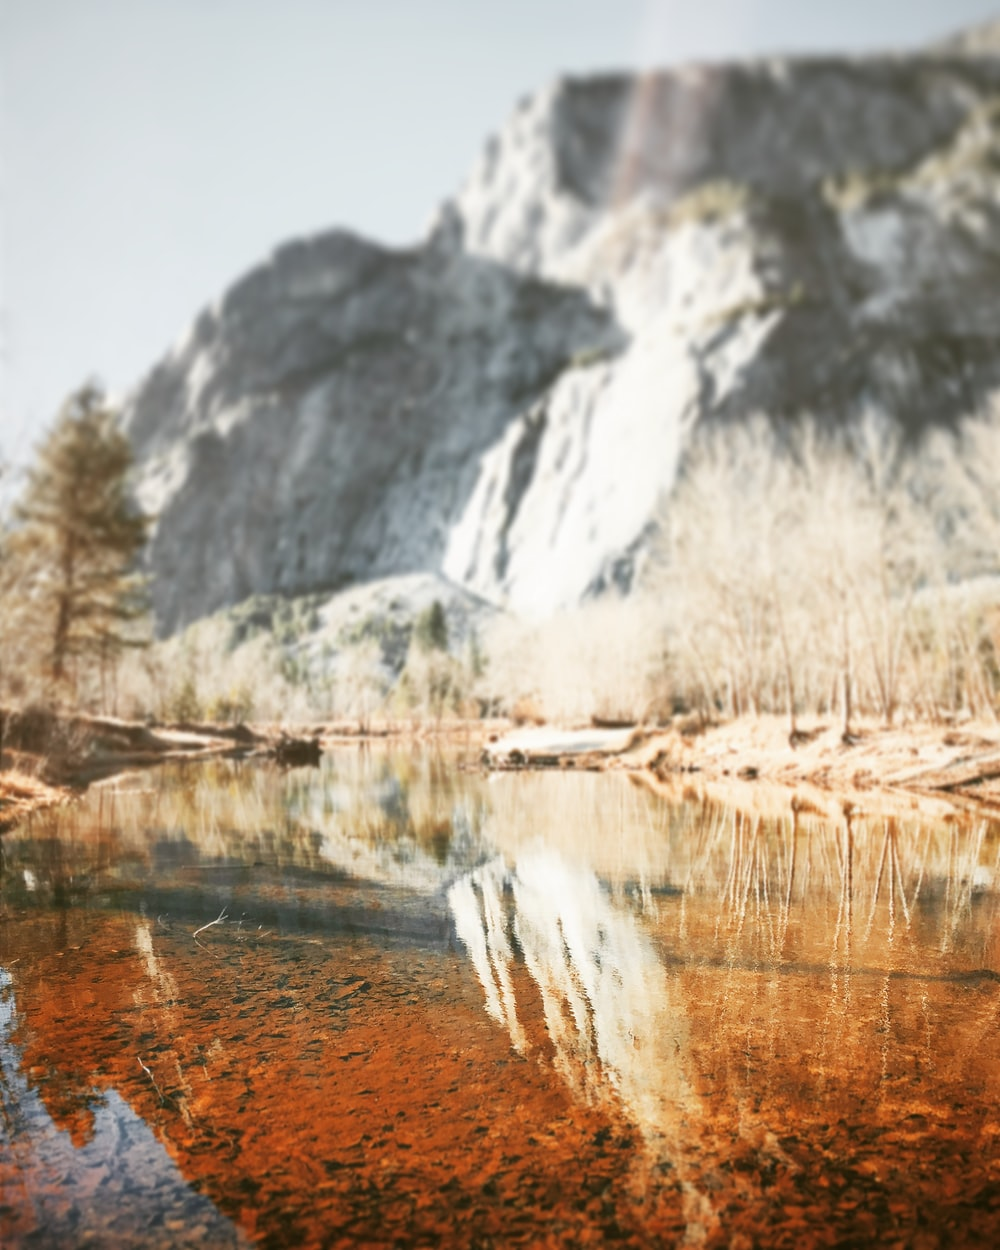 reflection of rock cliff on calm river water